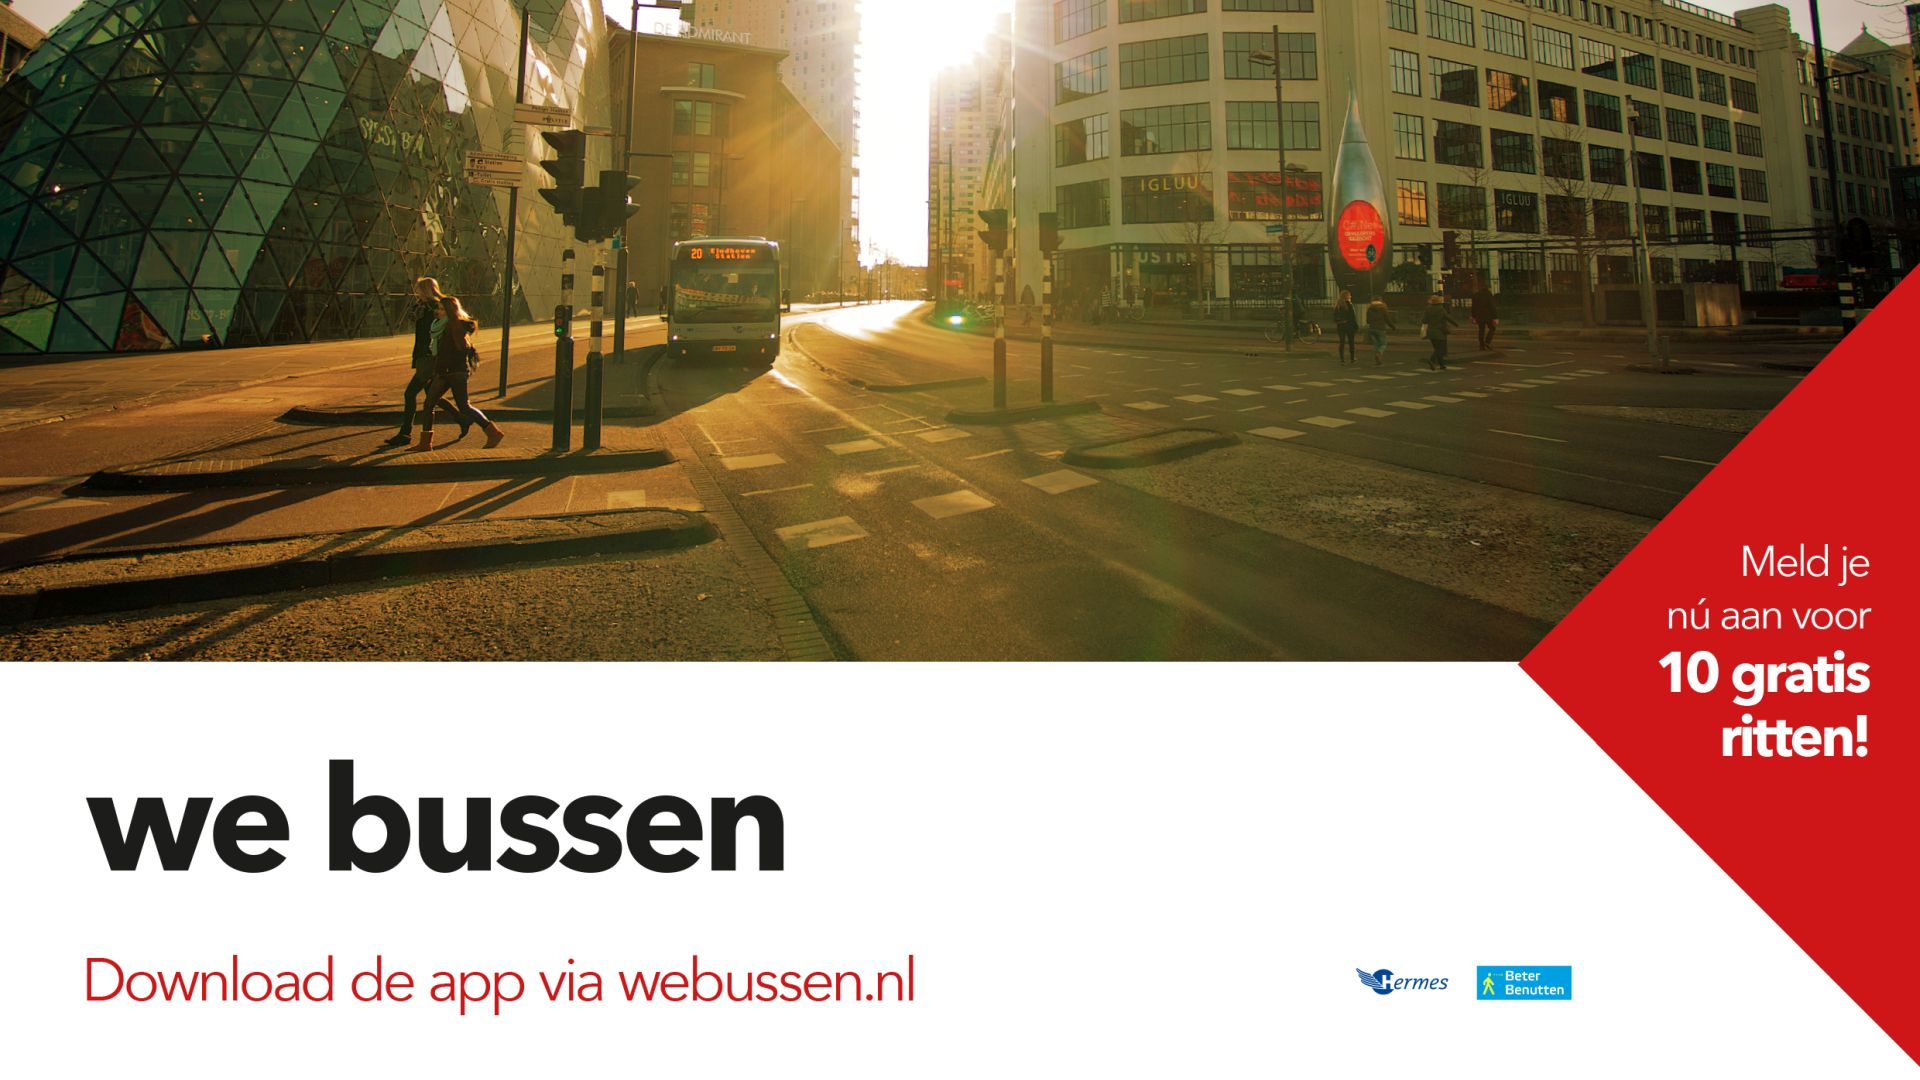 Catch a bus! 10 x free trial with the We-Bussen app